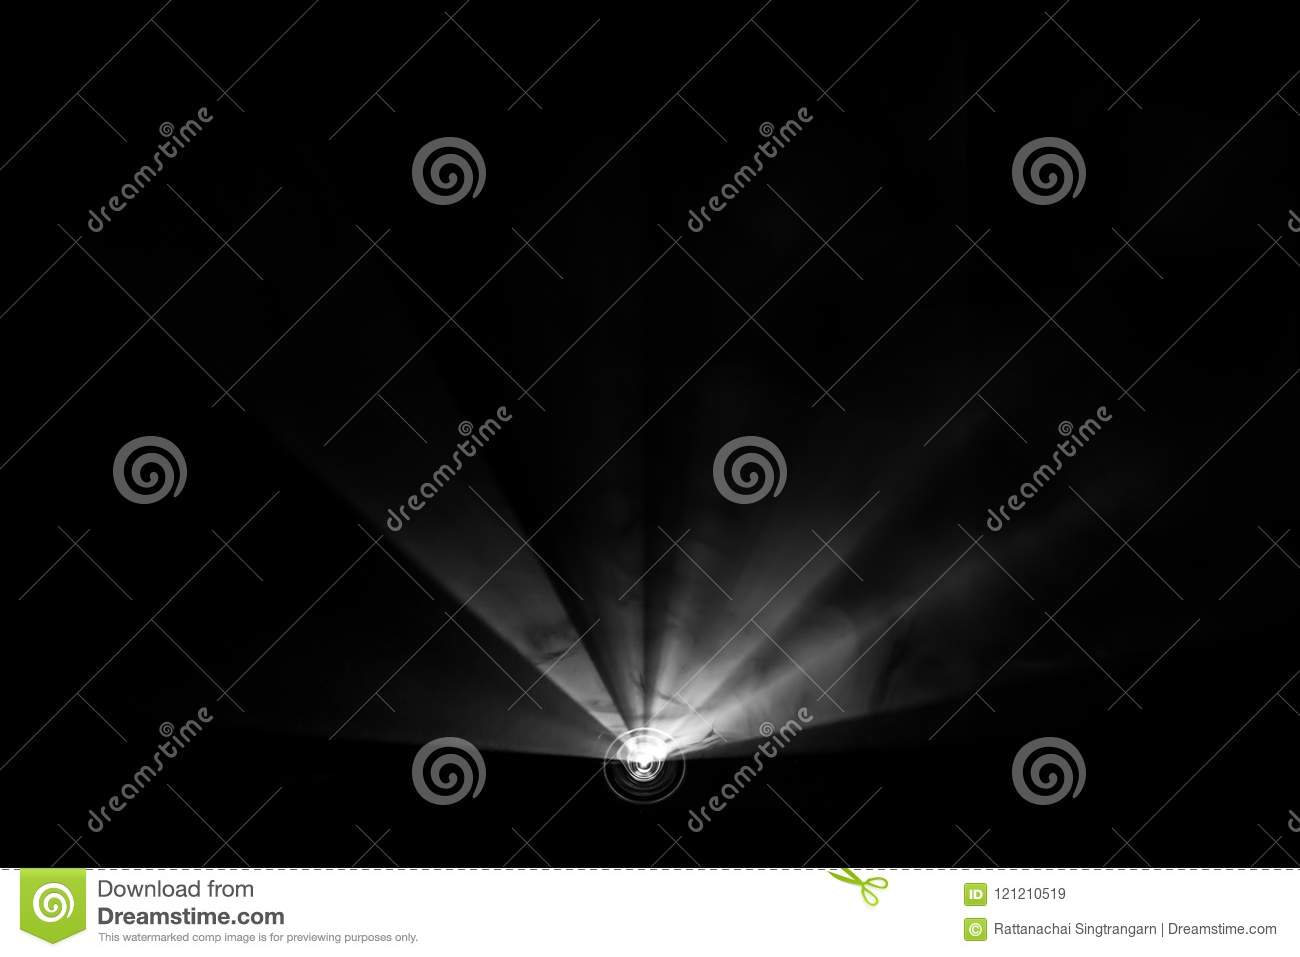 Projector beautiful black and white lighting . wide lcd lens equipment for show presentation at night . smoke abstract background